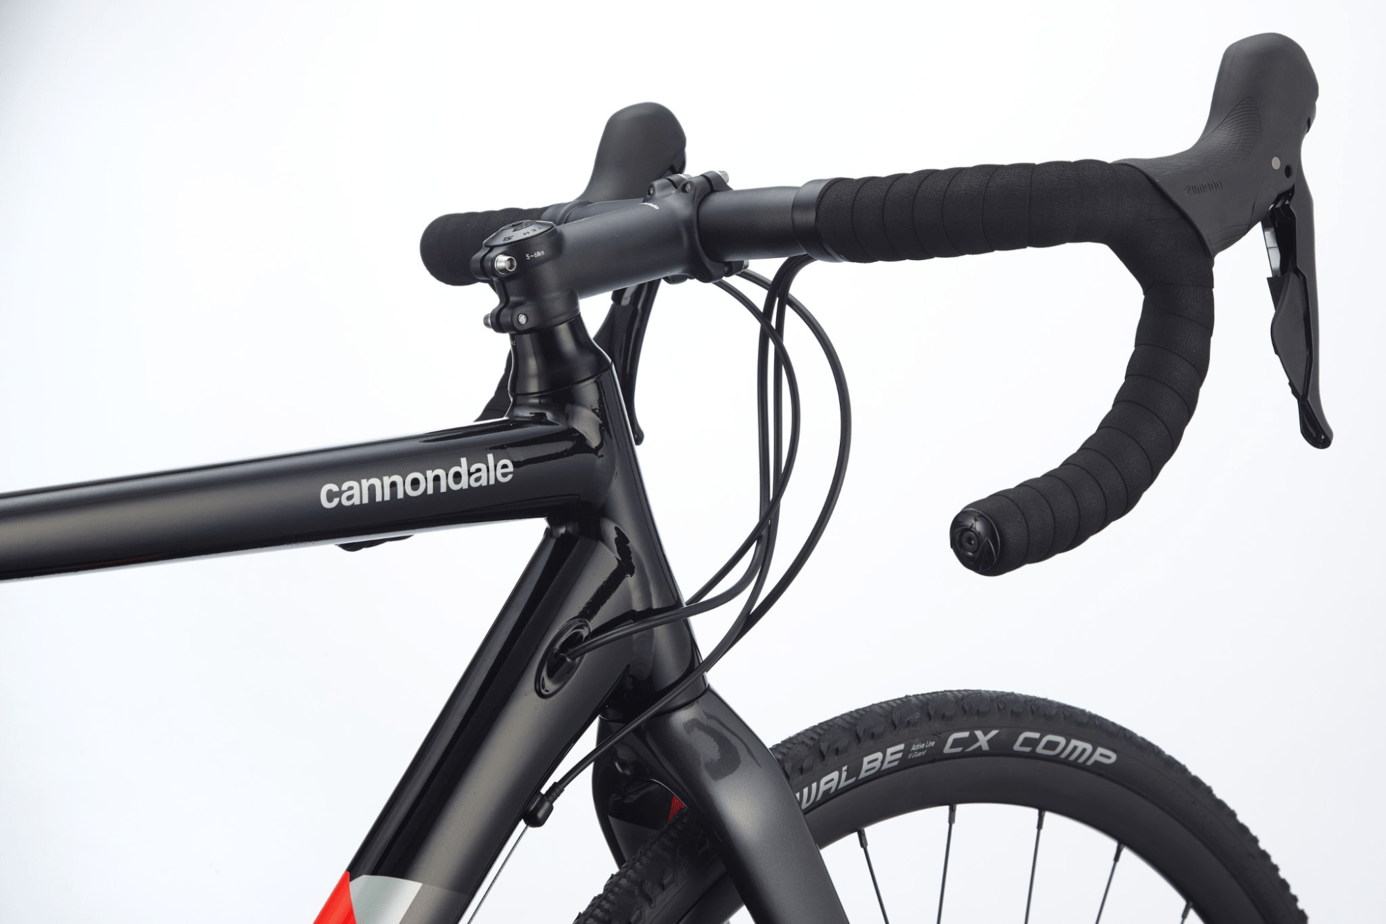 Cannondale Caadx brakes